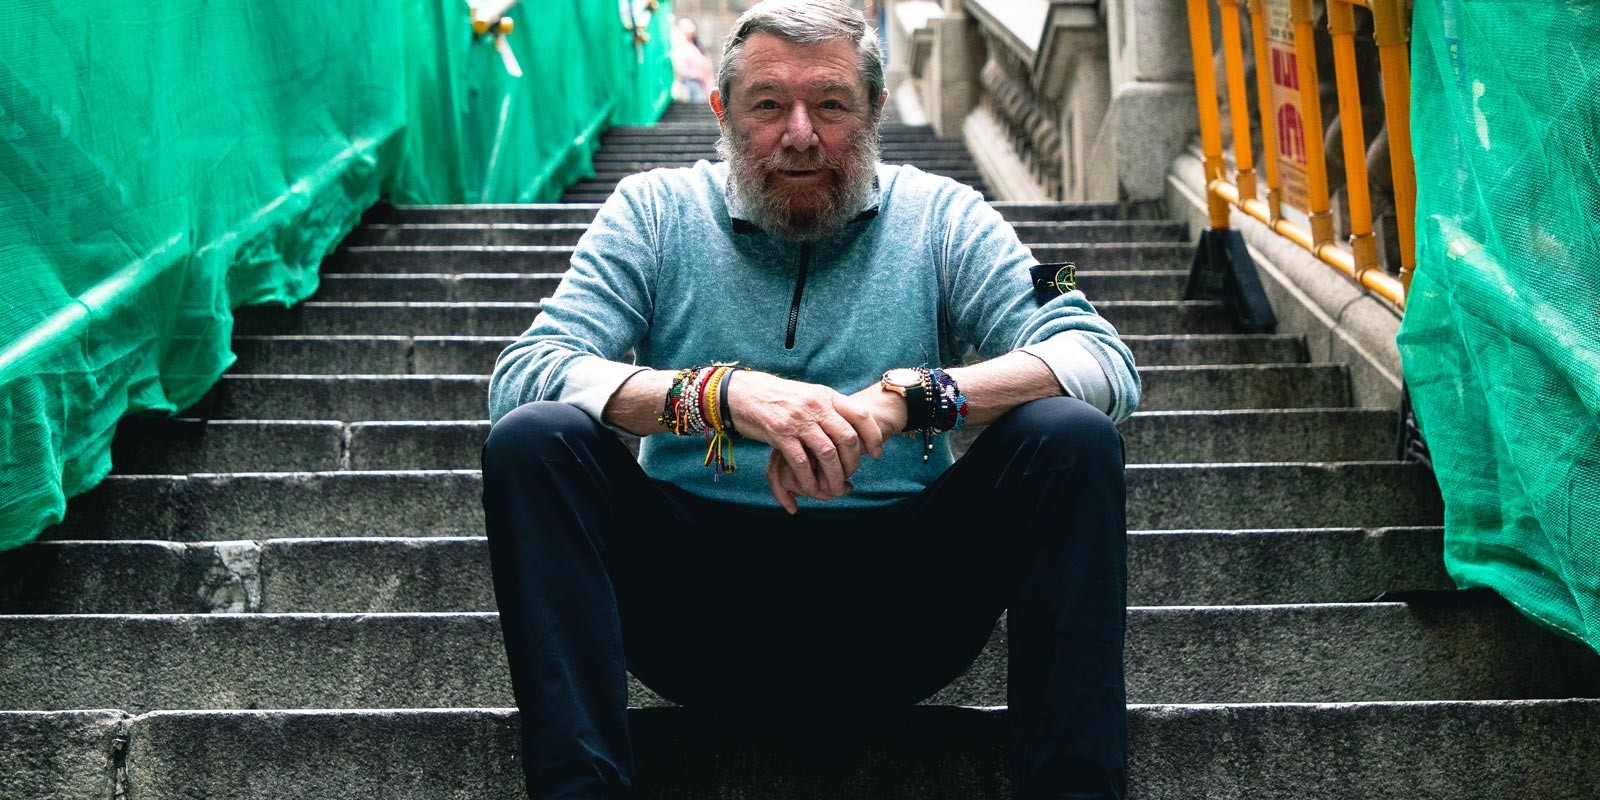 Carlo Rivetti Stone Island Full Interview hong kong store opening asia expansion italian italy brand fashion industrial design high end performance innovation design research materials garments drake supreme Massimo Osti rolex outdoors sandwich club street movement youth culture hong kong retail